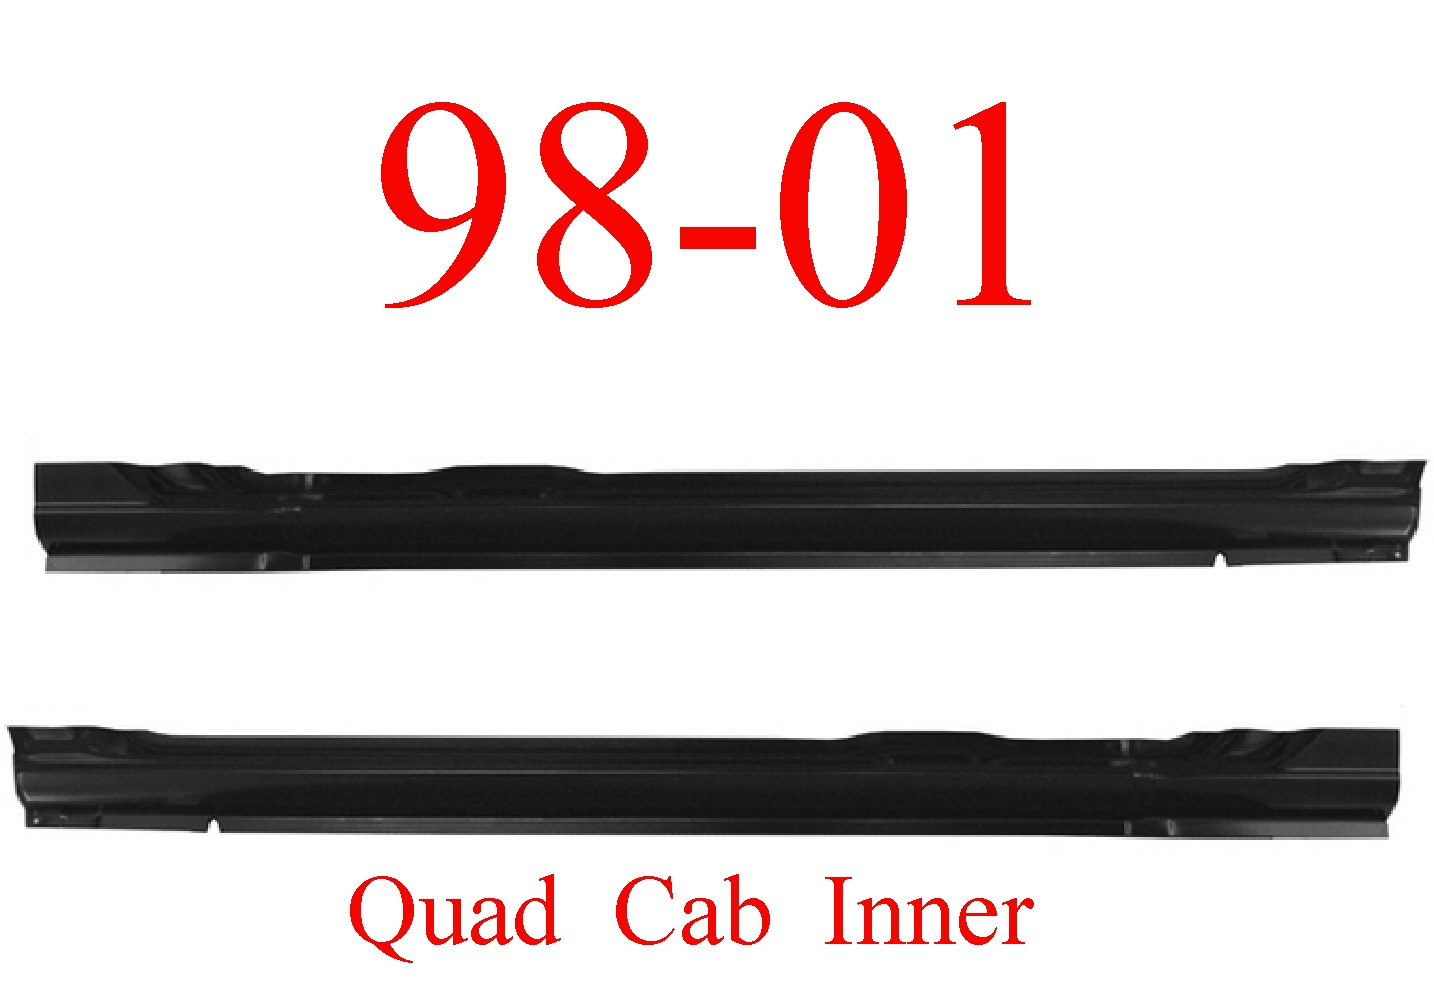 98-01 Dodge Quad Cab Inner Rocker Set